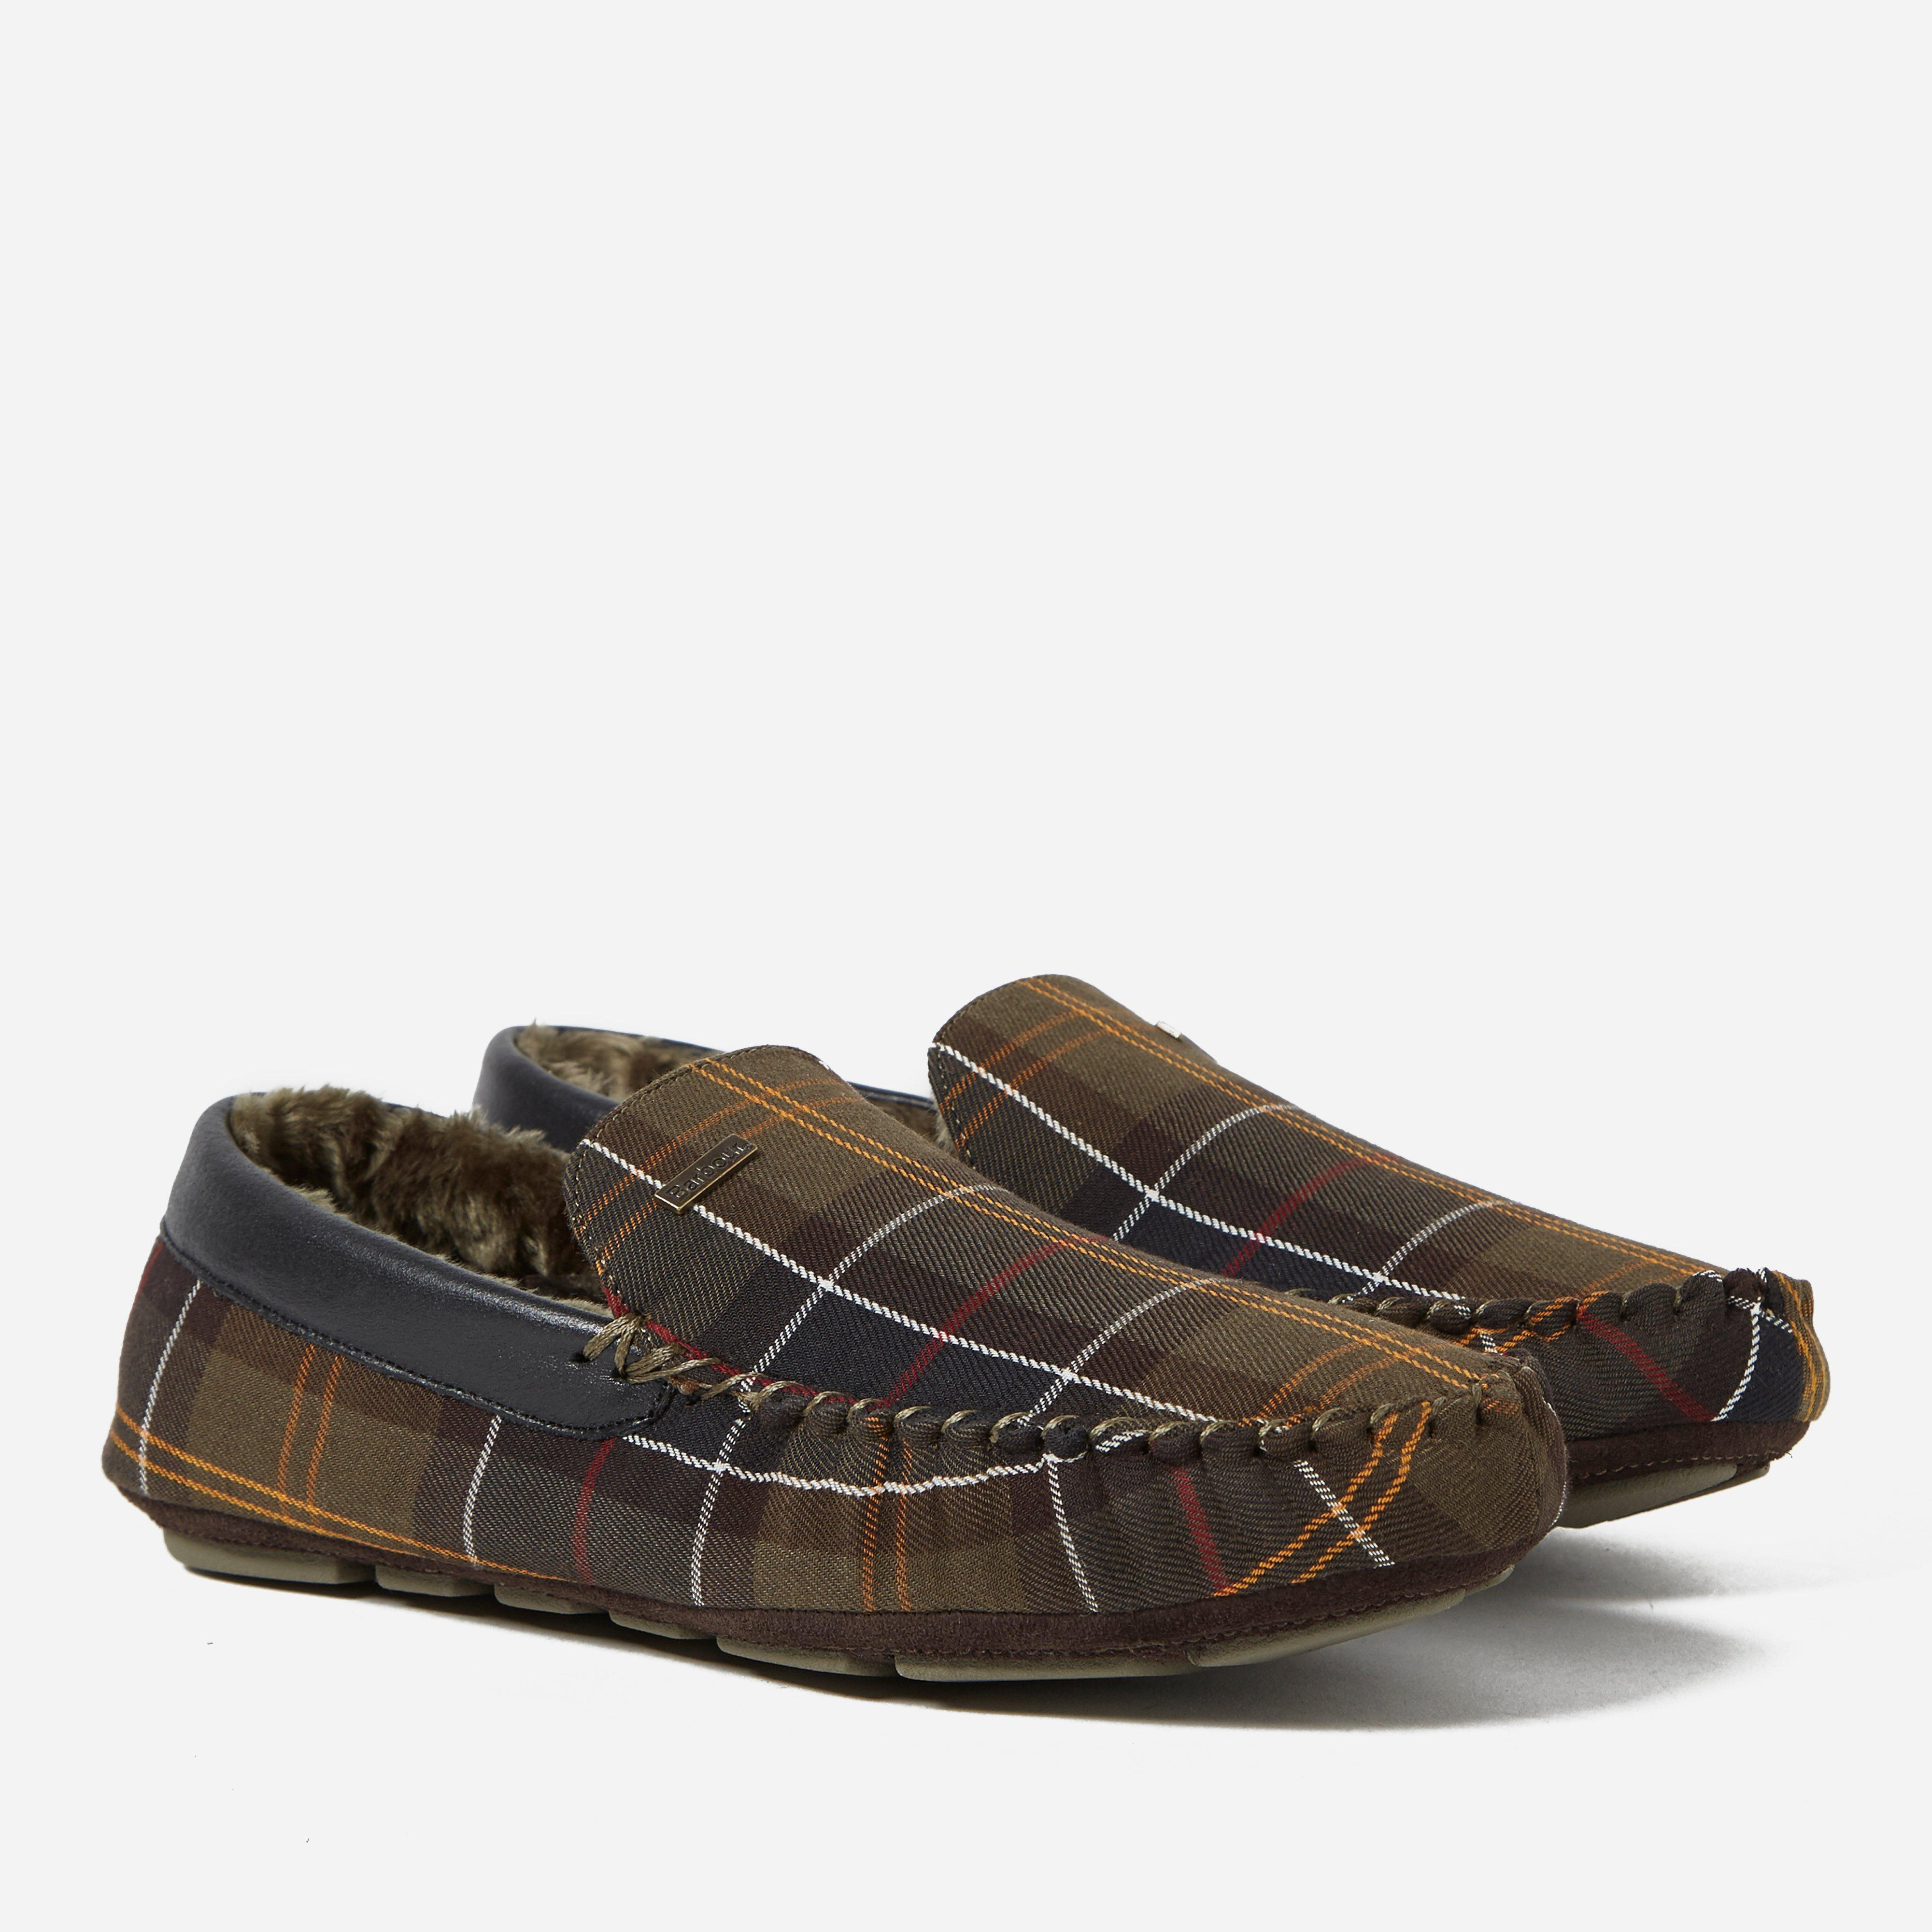 Barbour Classic Tartan Monty Slippers